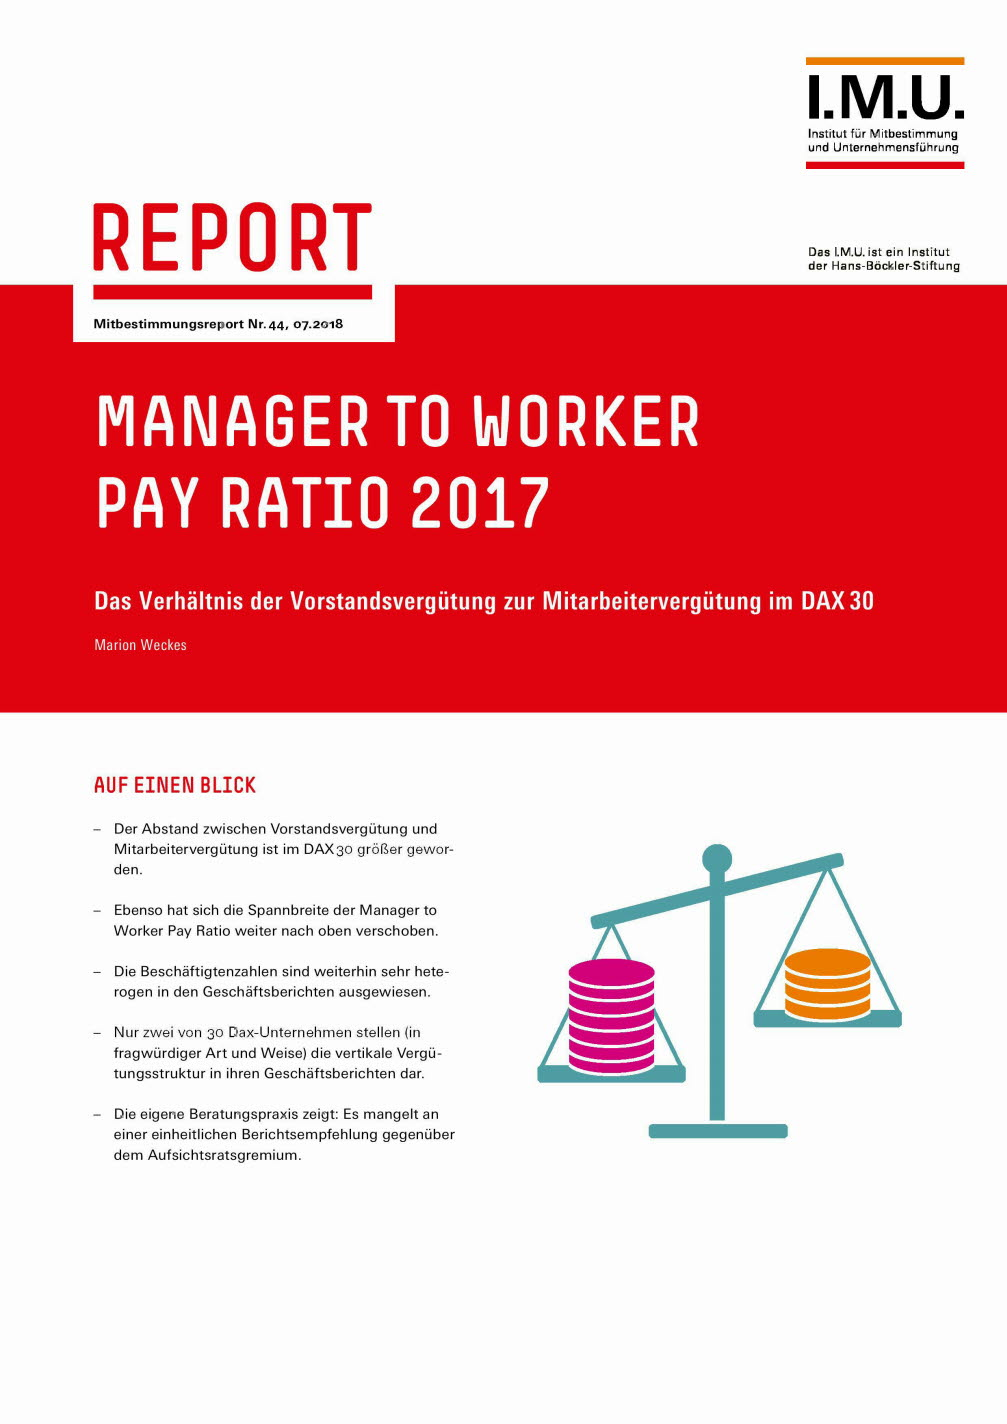 Manager to worker pay ratio 2017